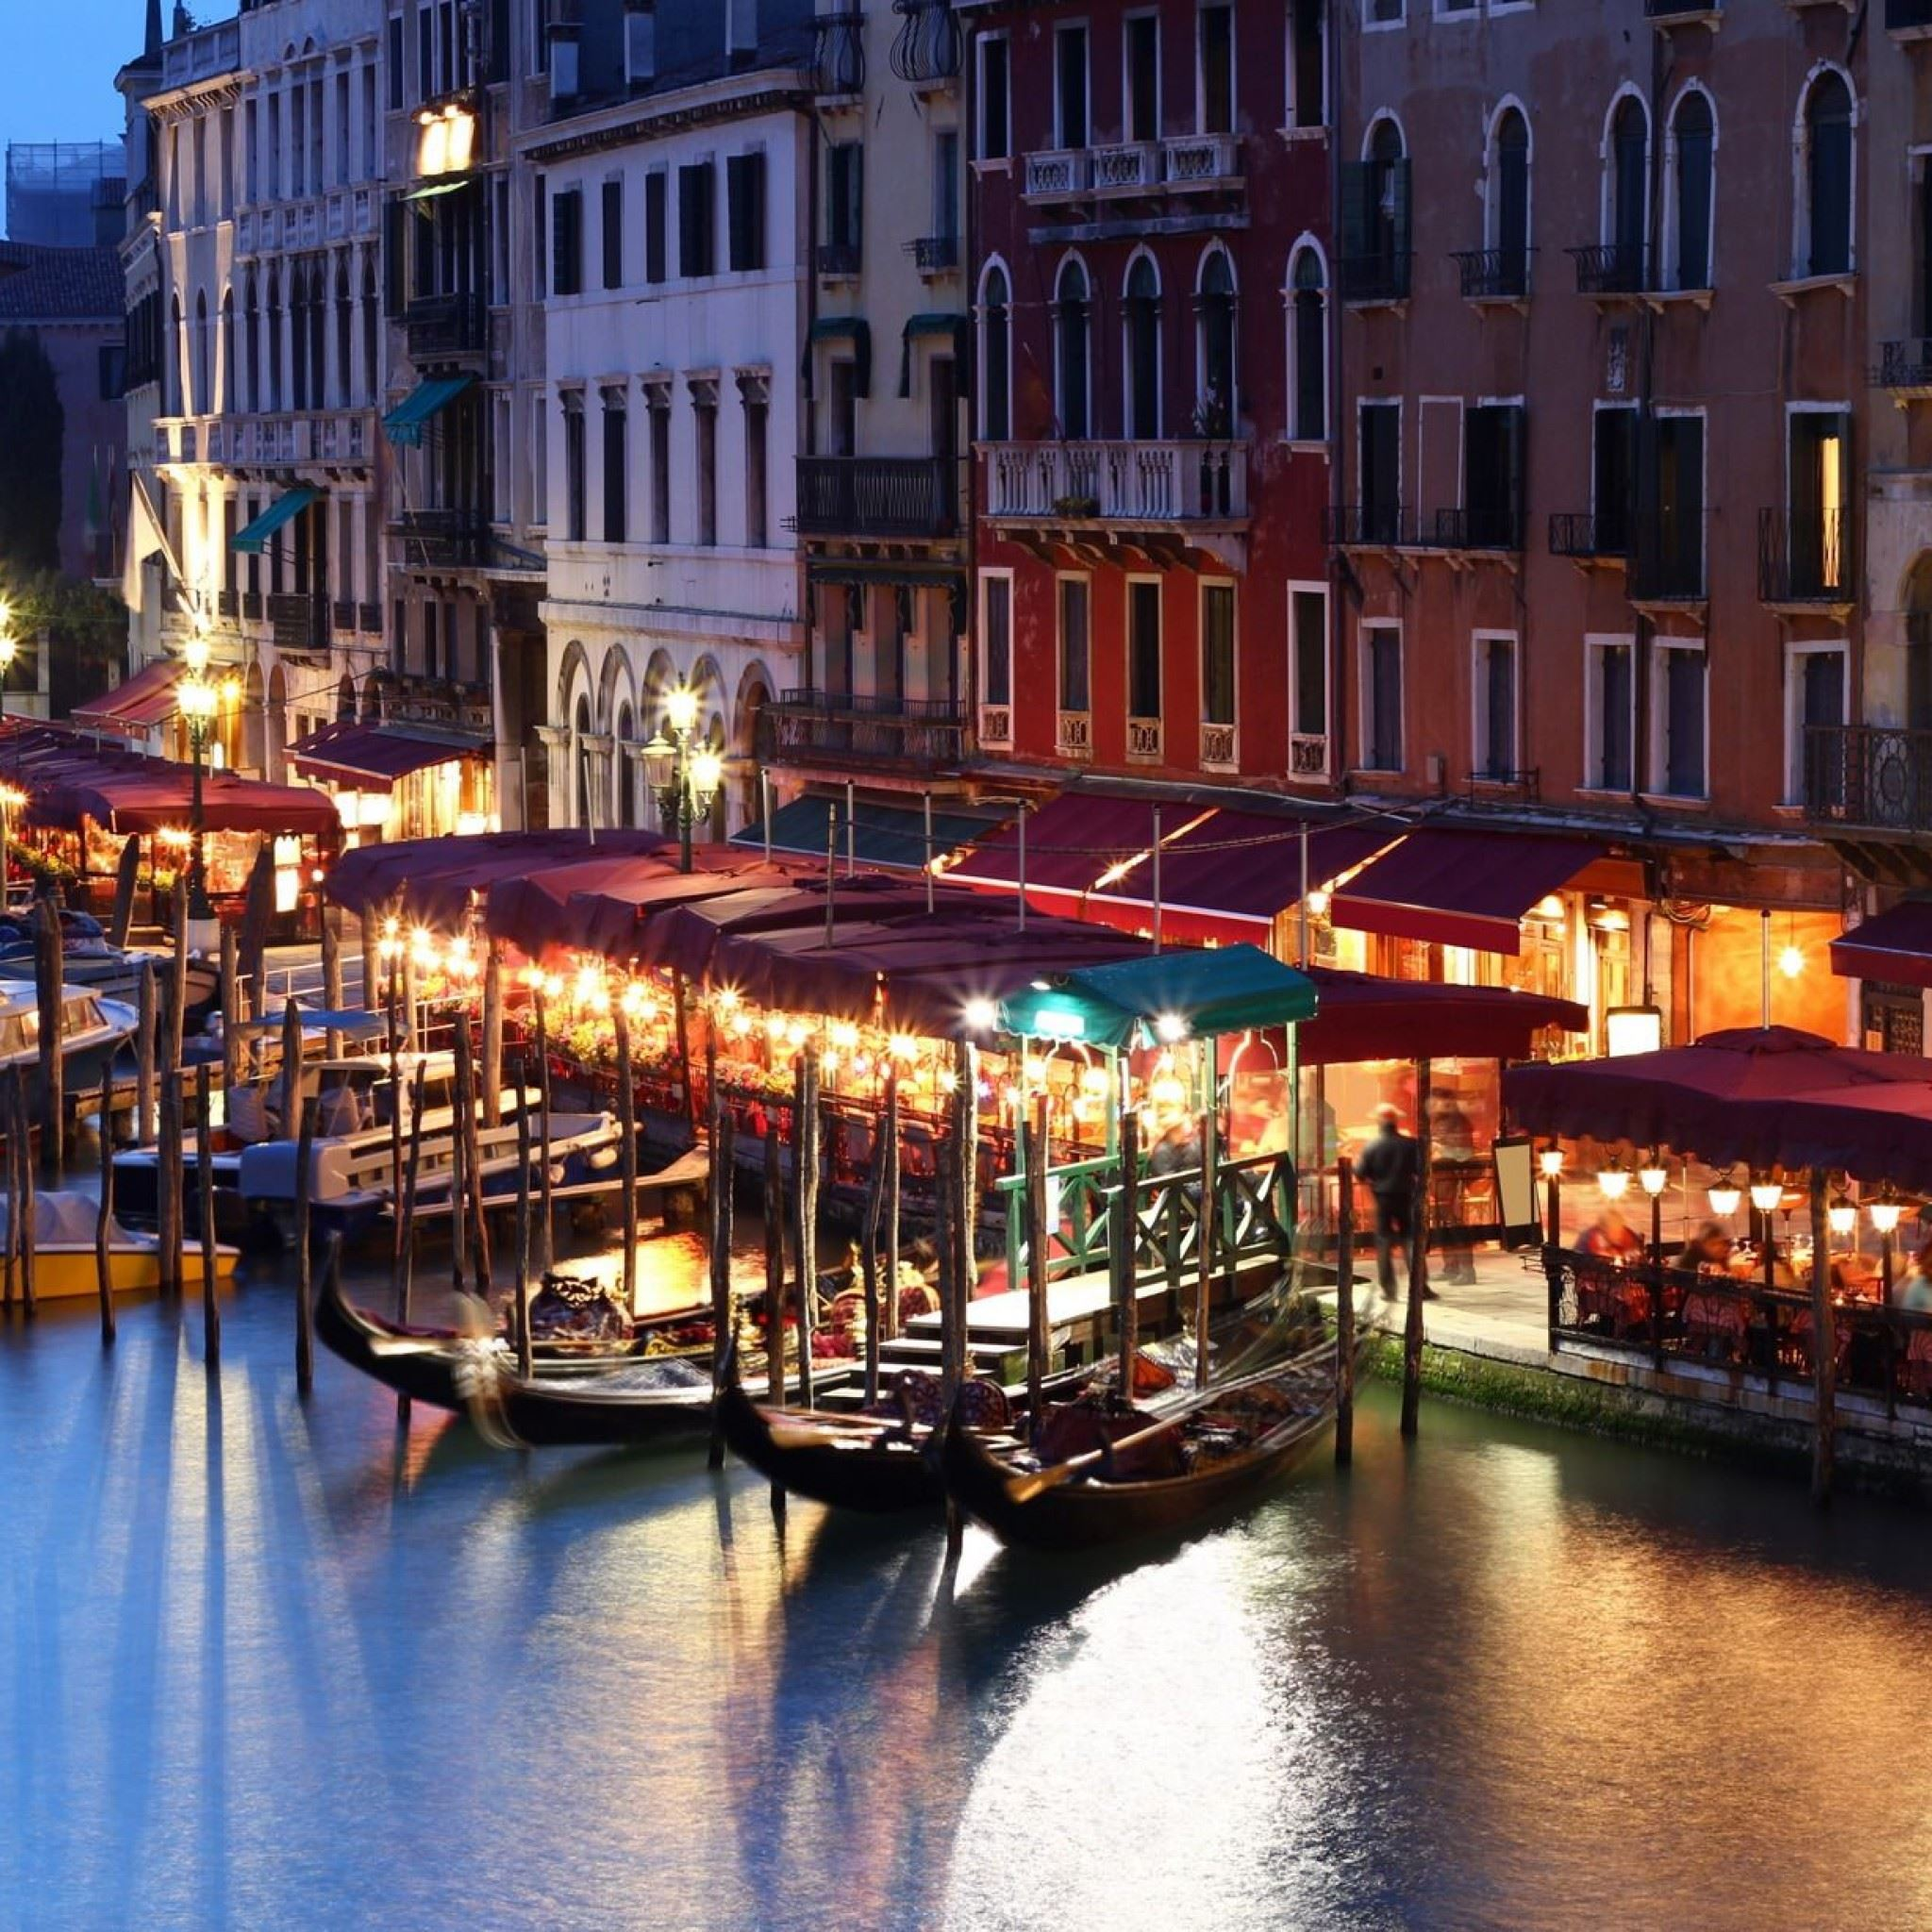 Venice Italy Building House iPad Air wallpaper